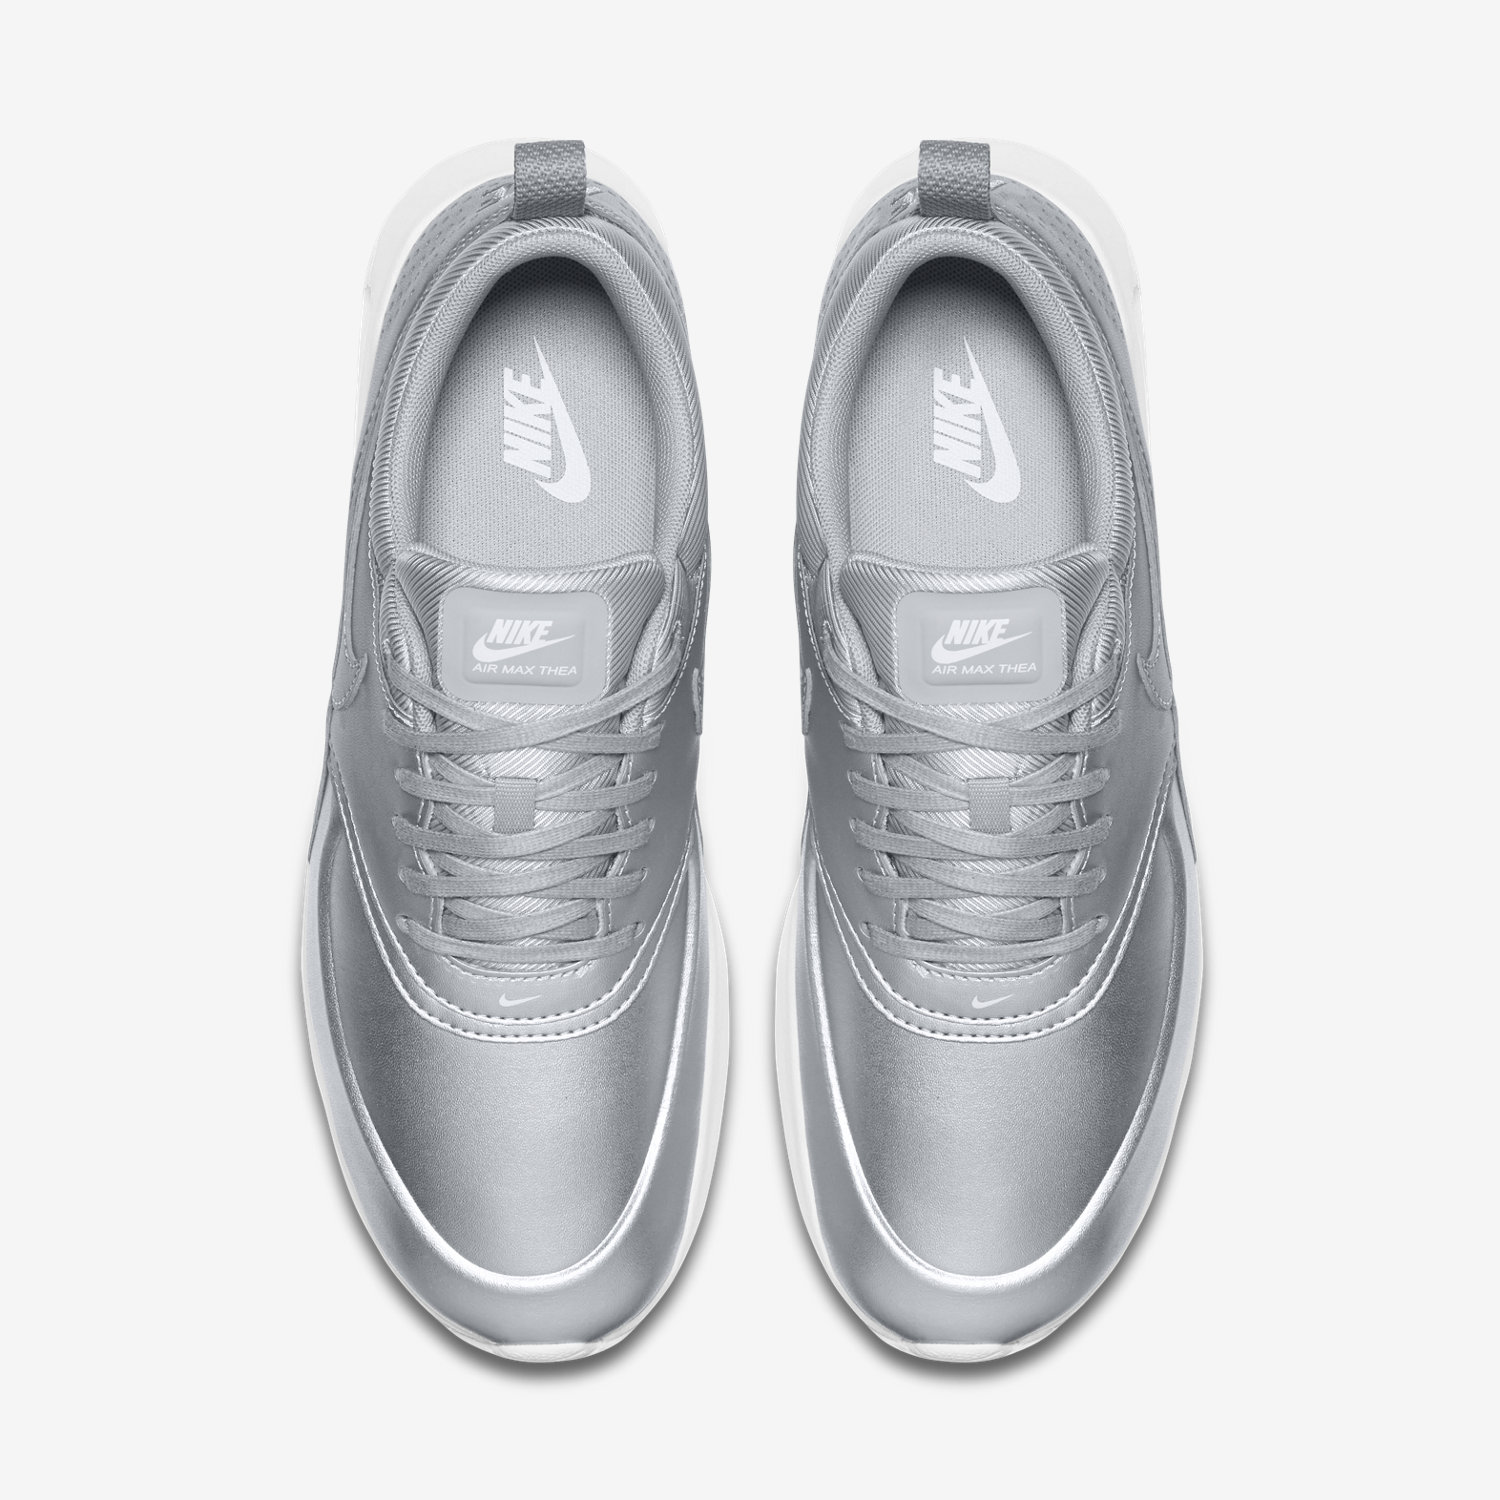 New NIKE WOMENS AIR MAX THEA SE METALLIC SILVER NWT